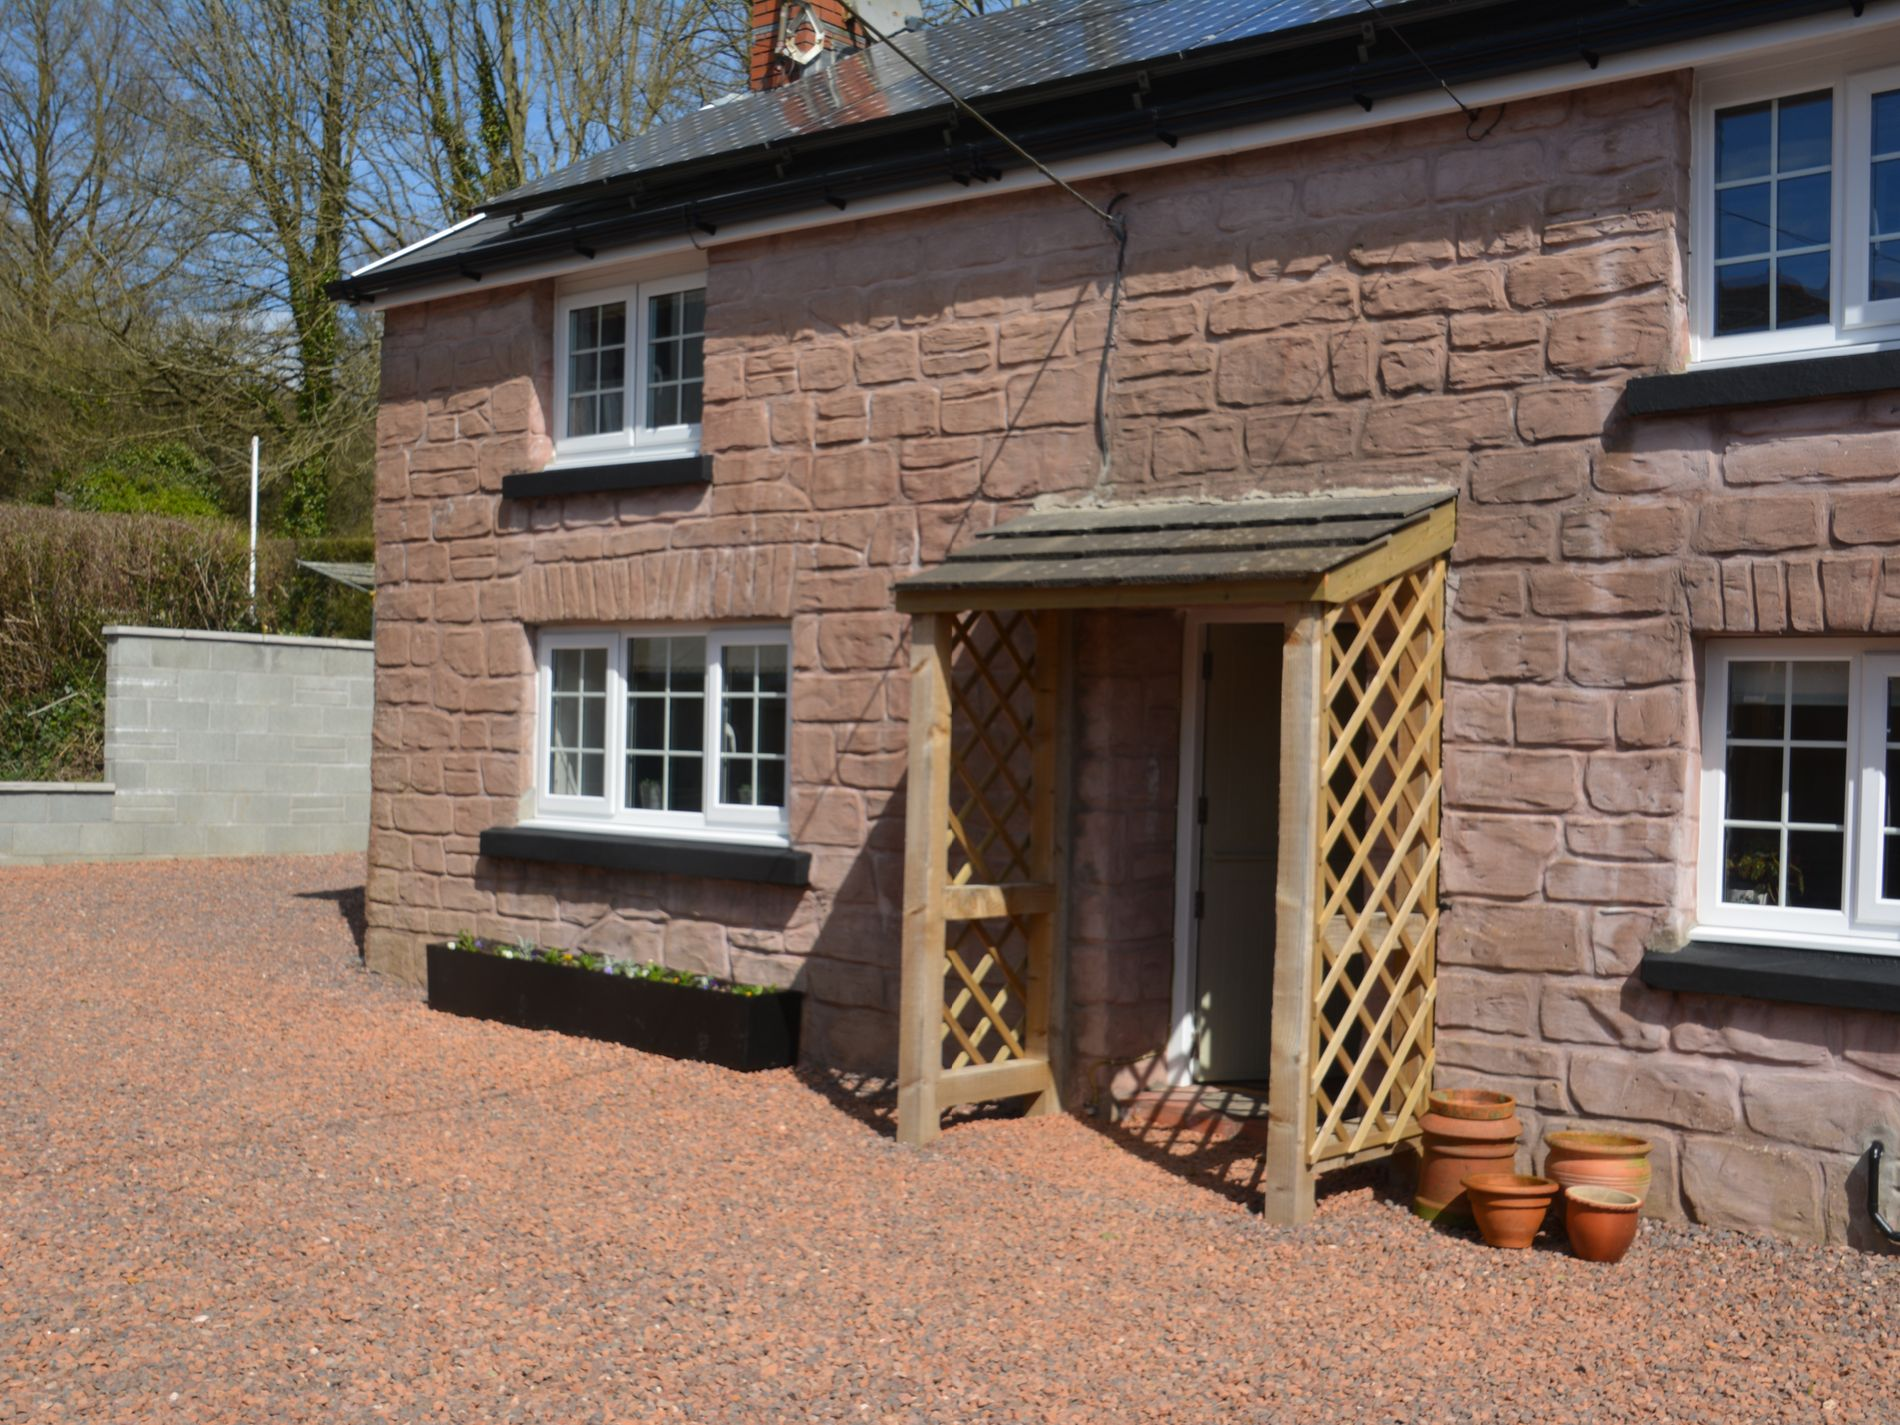 1 Bedroom Cottage in Kidwelly, Mid Wales